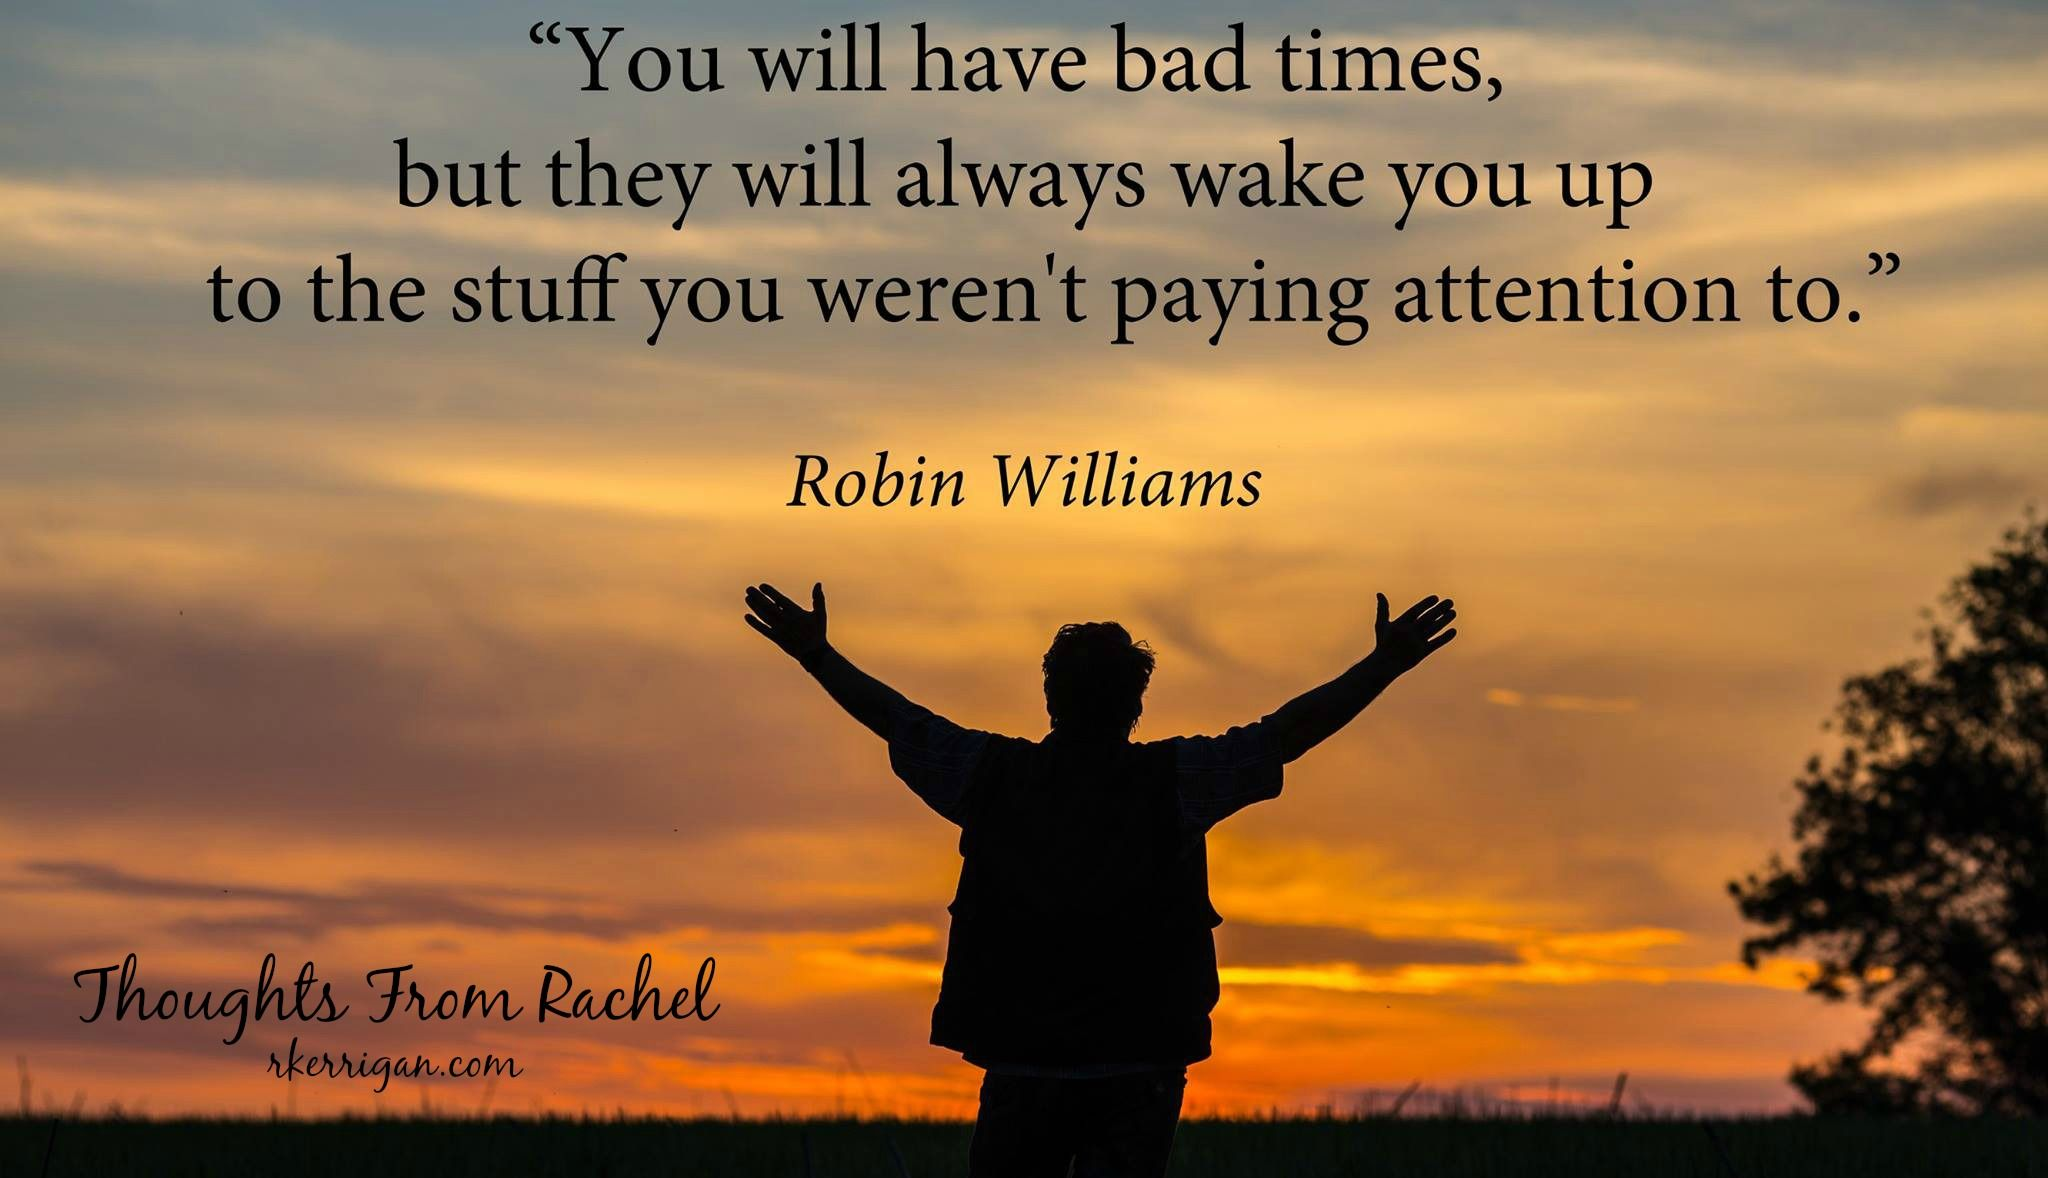 Most Meaningful Quotes Robinwilliams3 3  Jessica's Most Meaningful Quotes  Pinterest